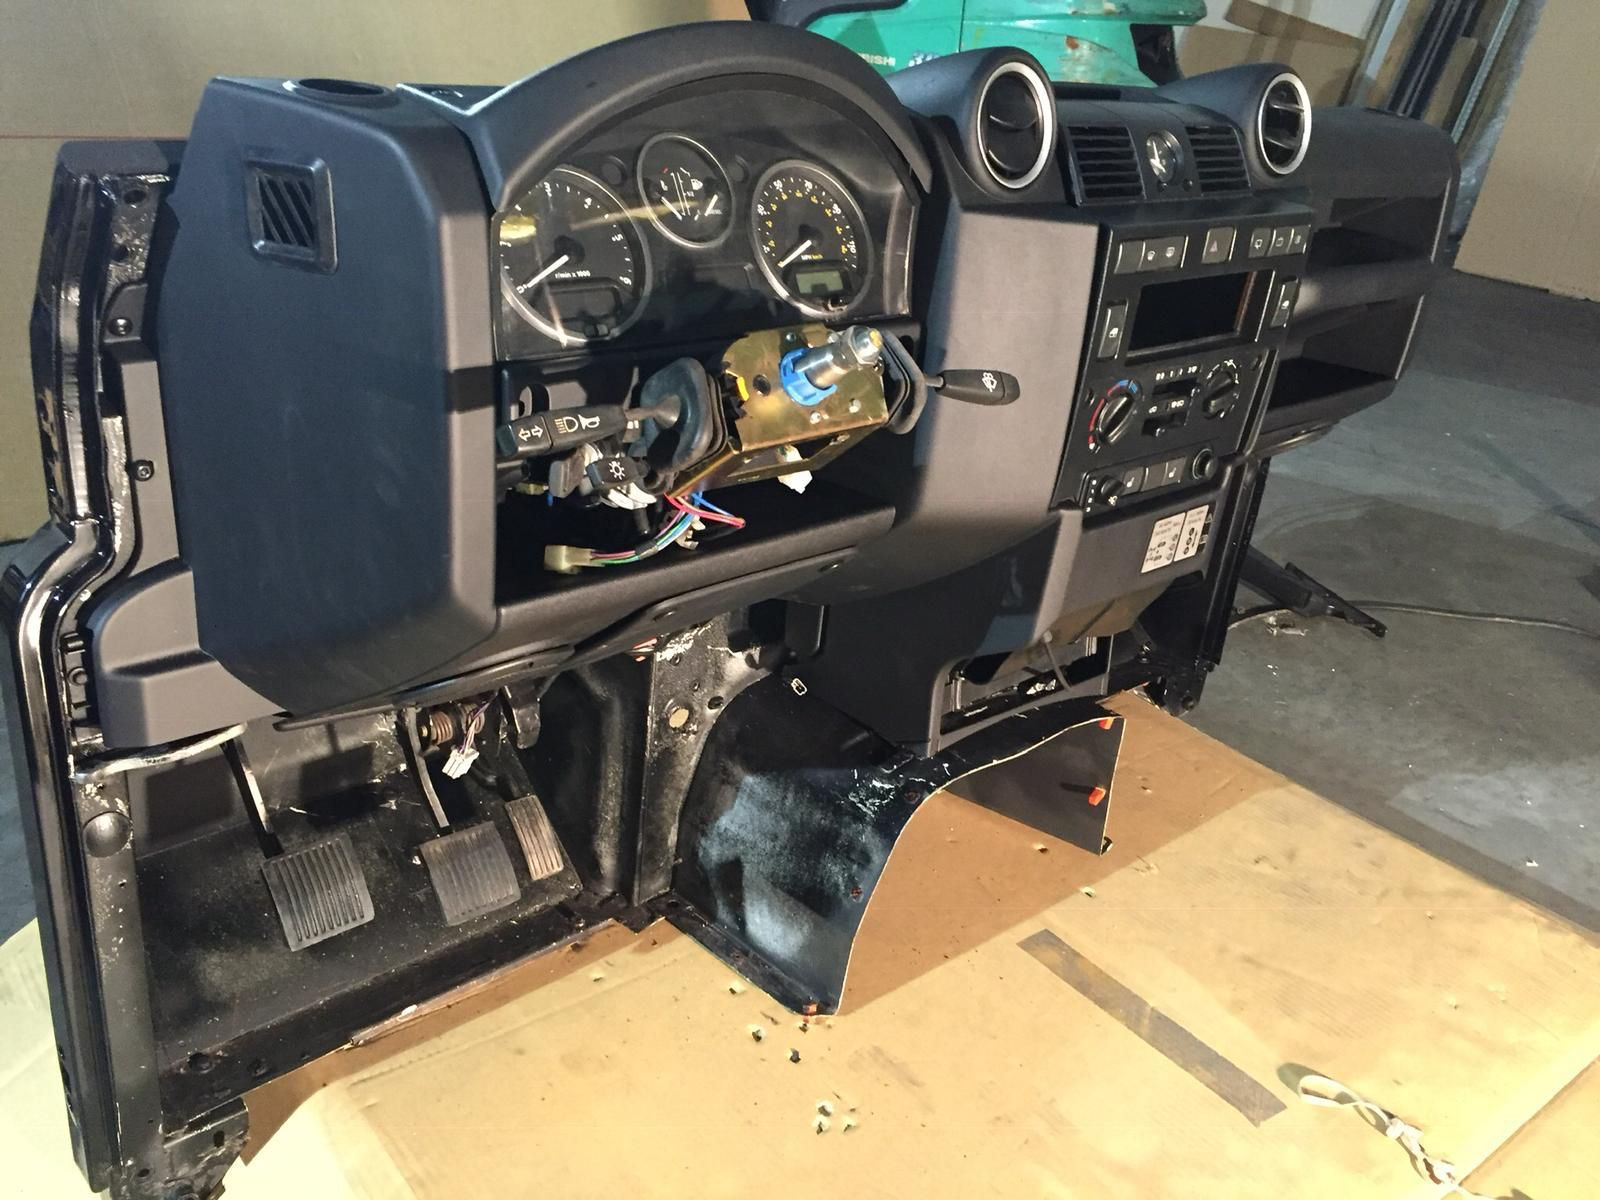 Lhd Land Rover Defender Puma Bulkhead Dashboard Fits All Years Inc Nas Defenders Defender For Sale Defender Land Rover